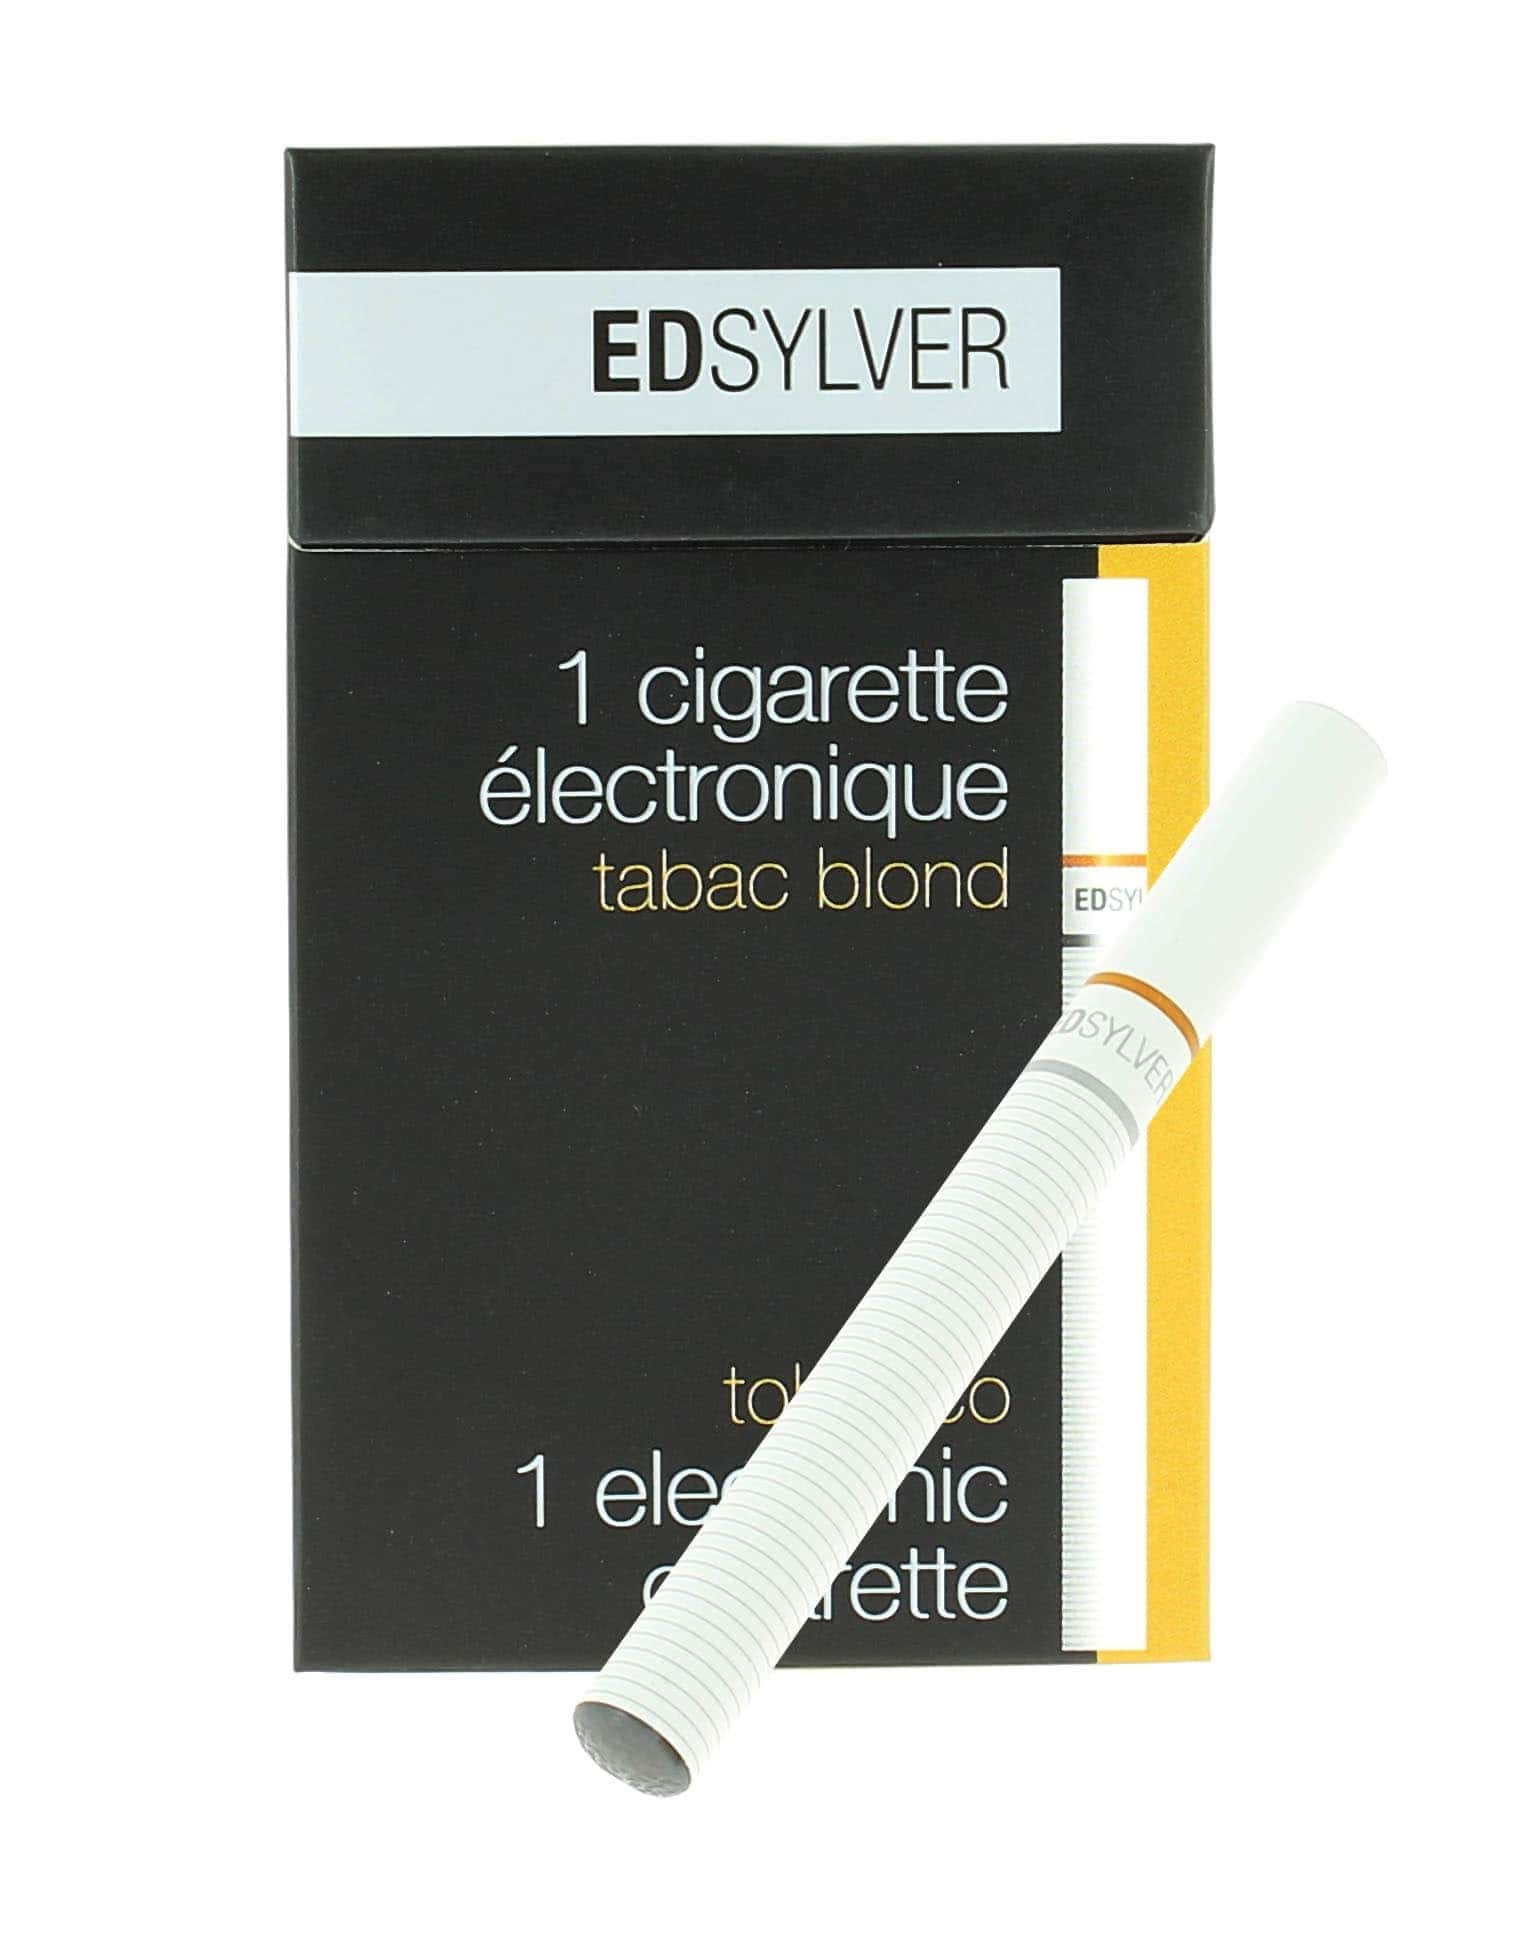 e cigarette jetable edsylver tabac blond avec nicotine 9 9. Black Bedroom Furniture Sets. Home Design Ideas